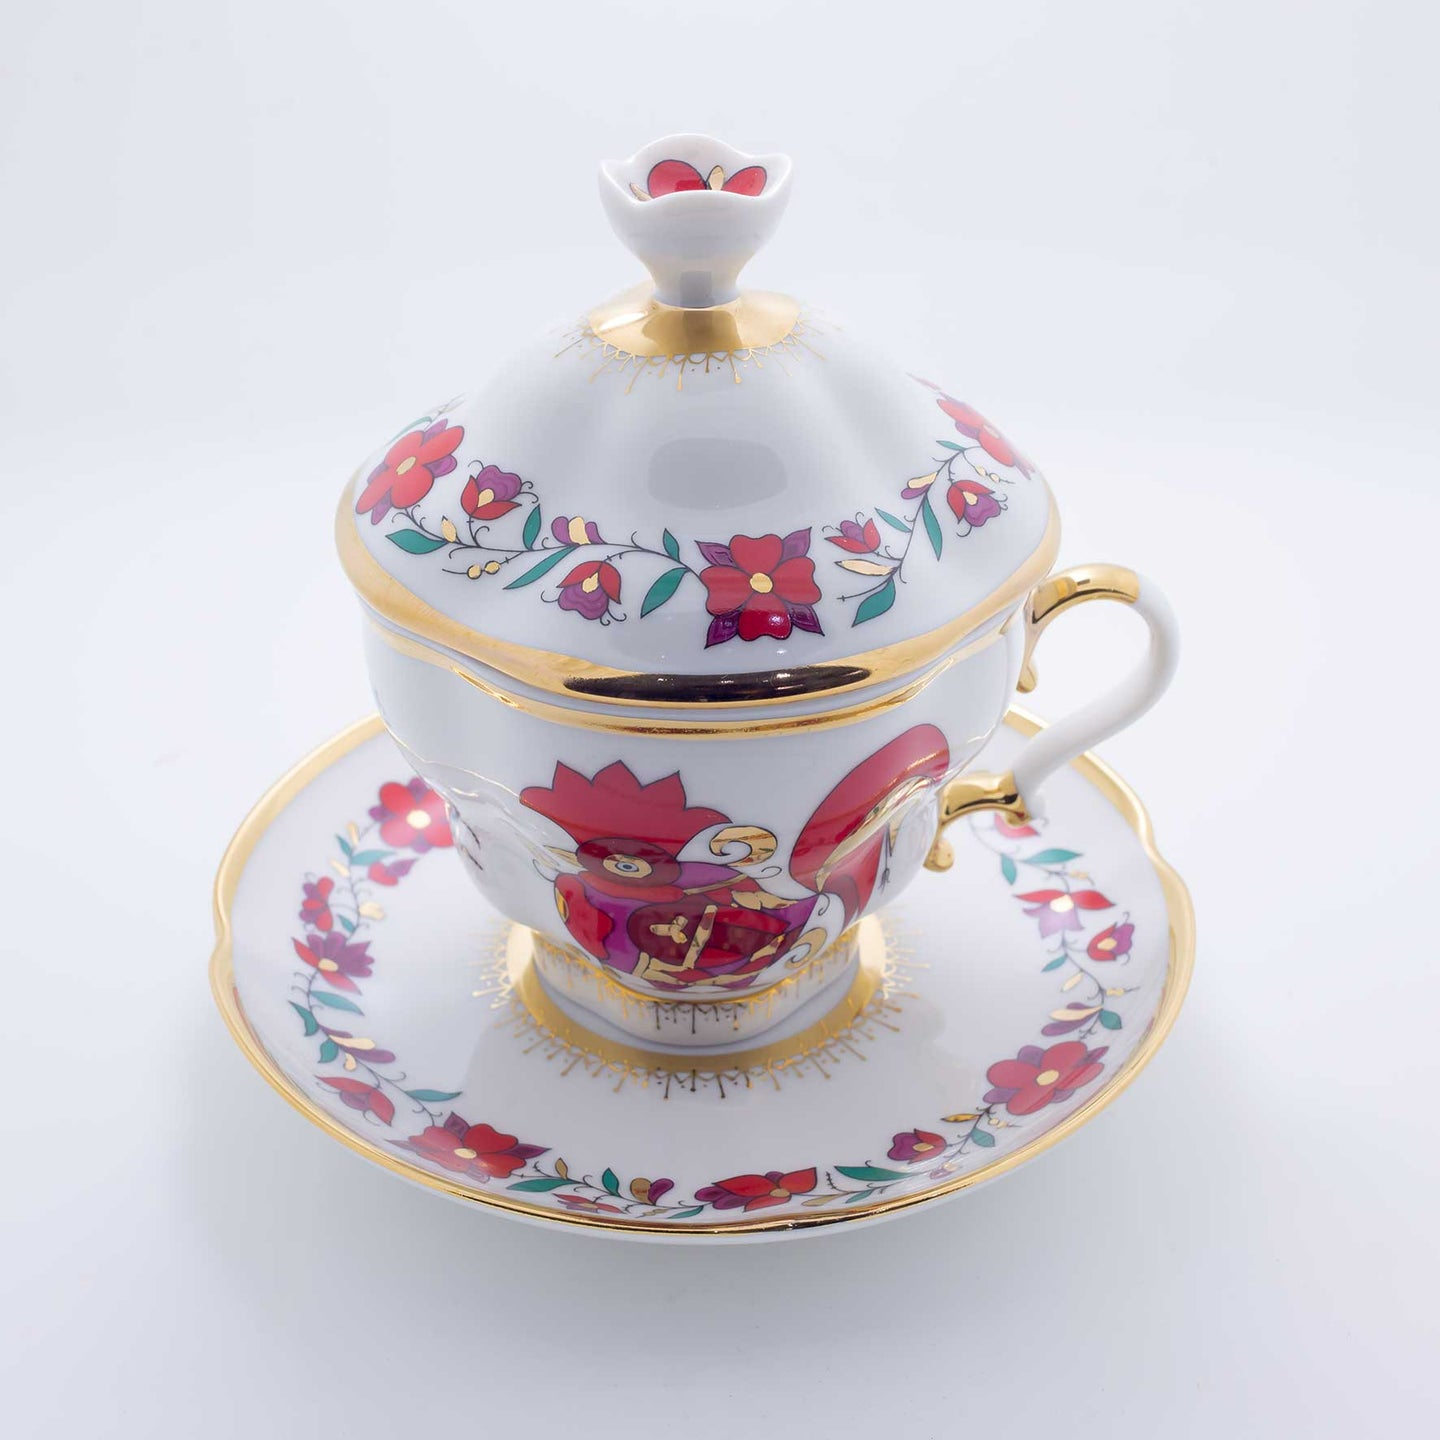 Refresh Moment Imperial Porcelain St. Petersburg 1744 Red Rooster Cover Up Teacup and Saucer